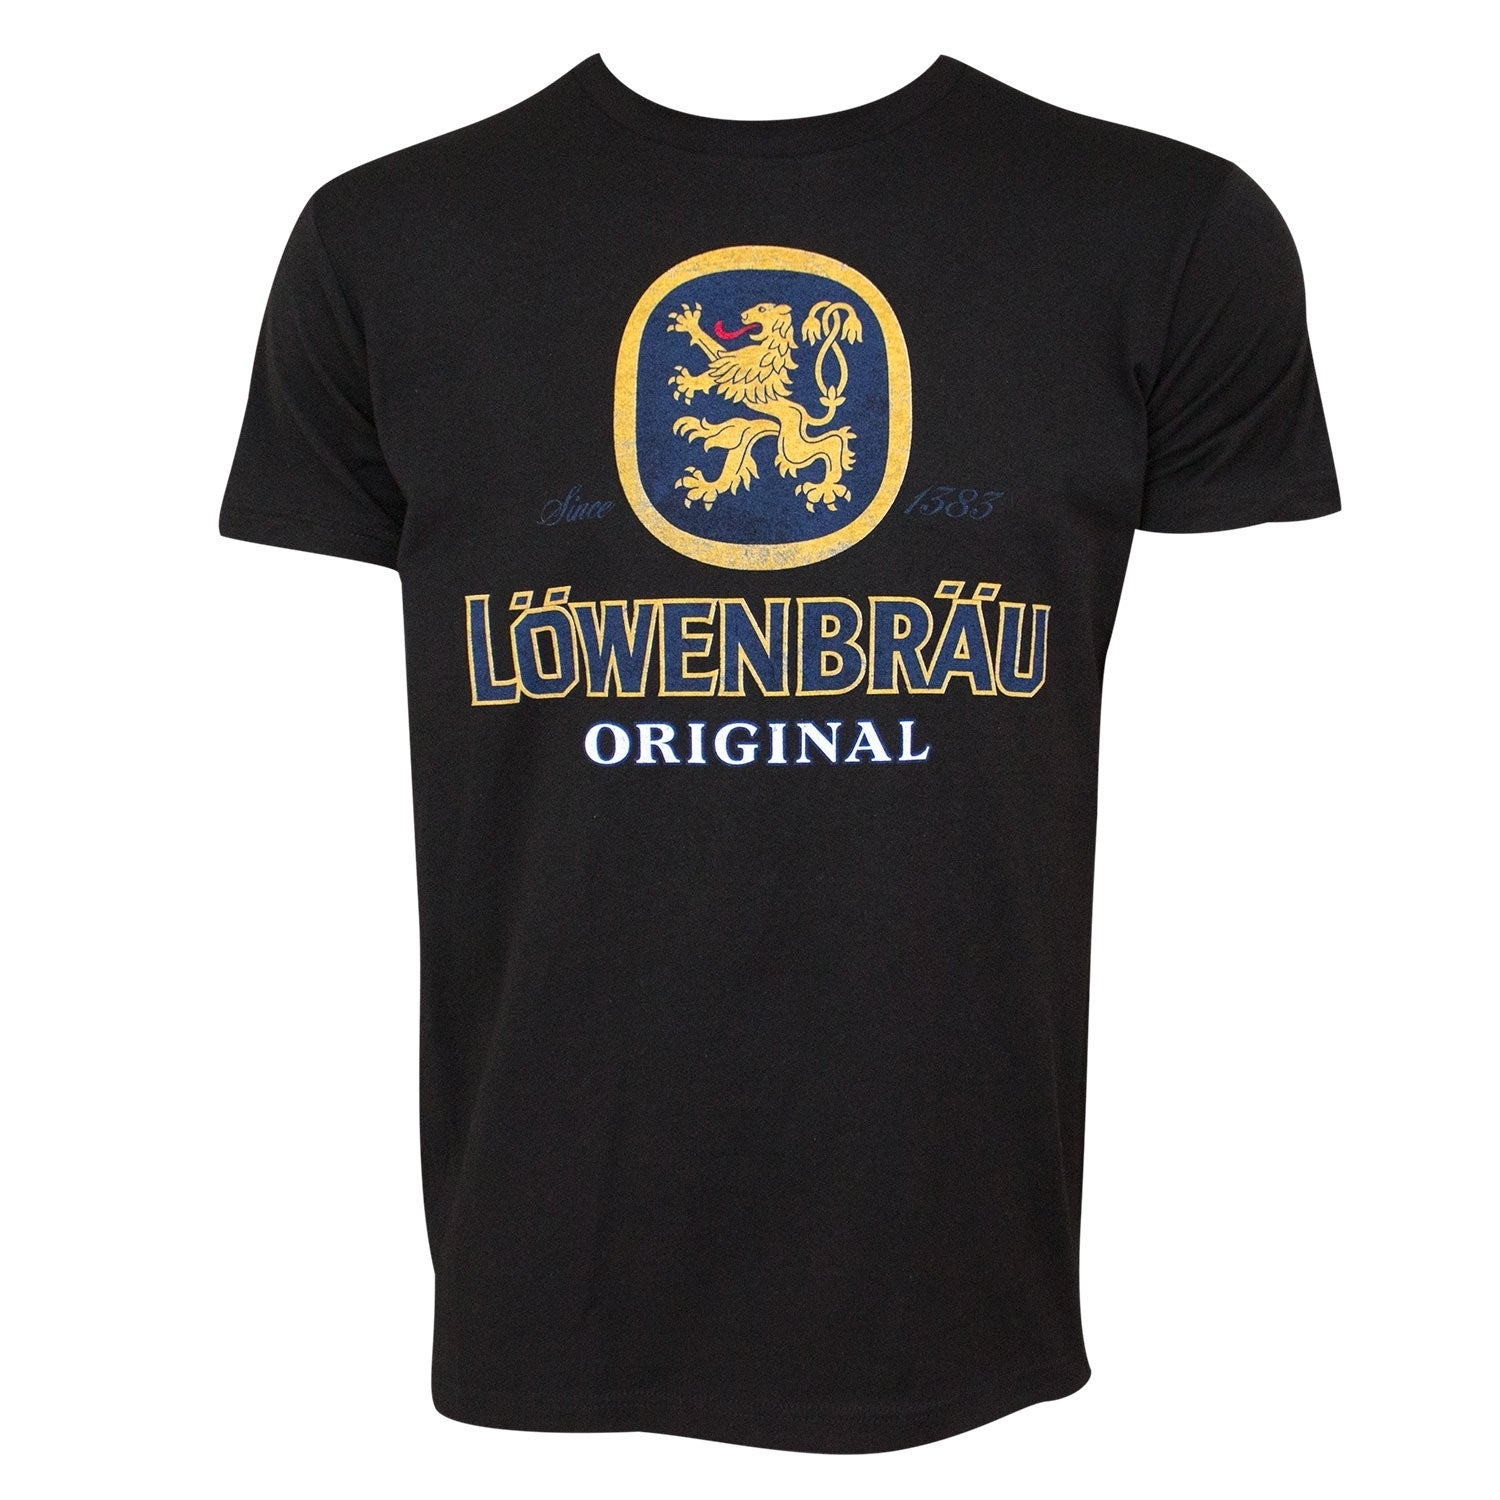 Lowenbrau Logo Black Tee Shirt.